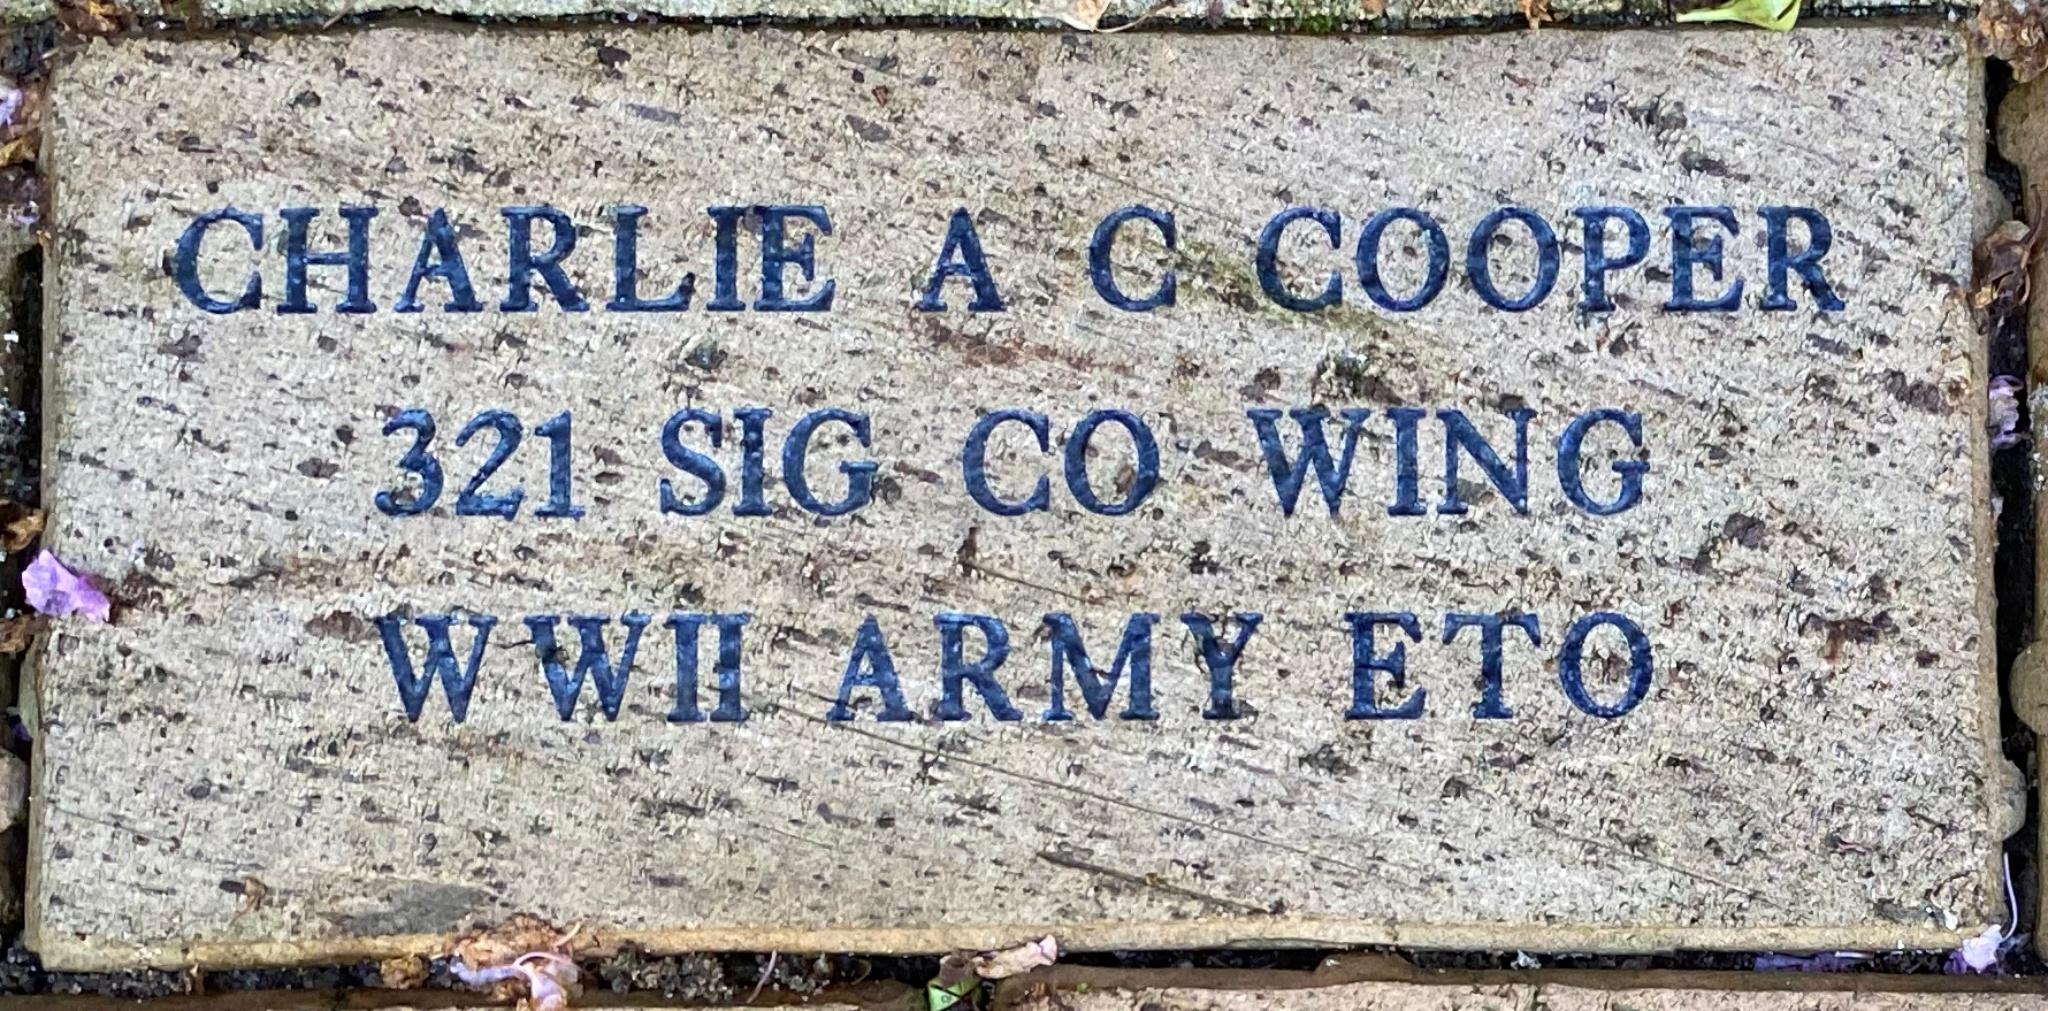 CHARLIE A C COOPER 321 SIG CO WING WWII ARMY ETO